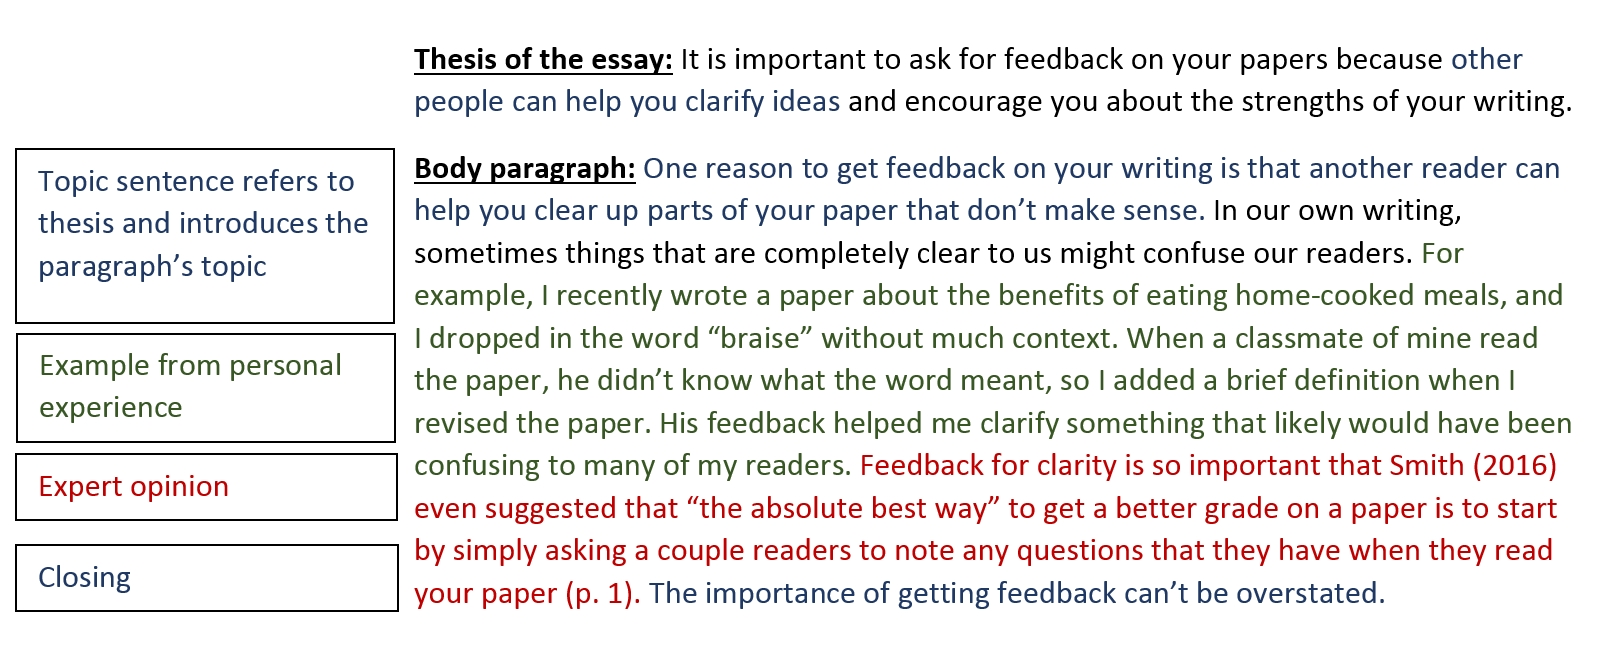 009 Research Paper Example Of Introduction Paragraph In Body Paragraphs Writing Your Guides At Eastern With Regard Excellent A Pdf Full